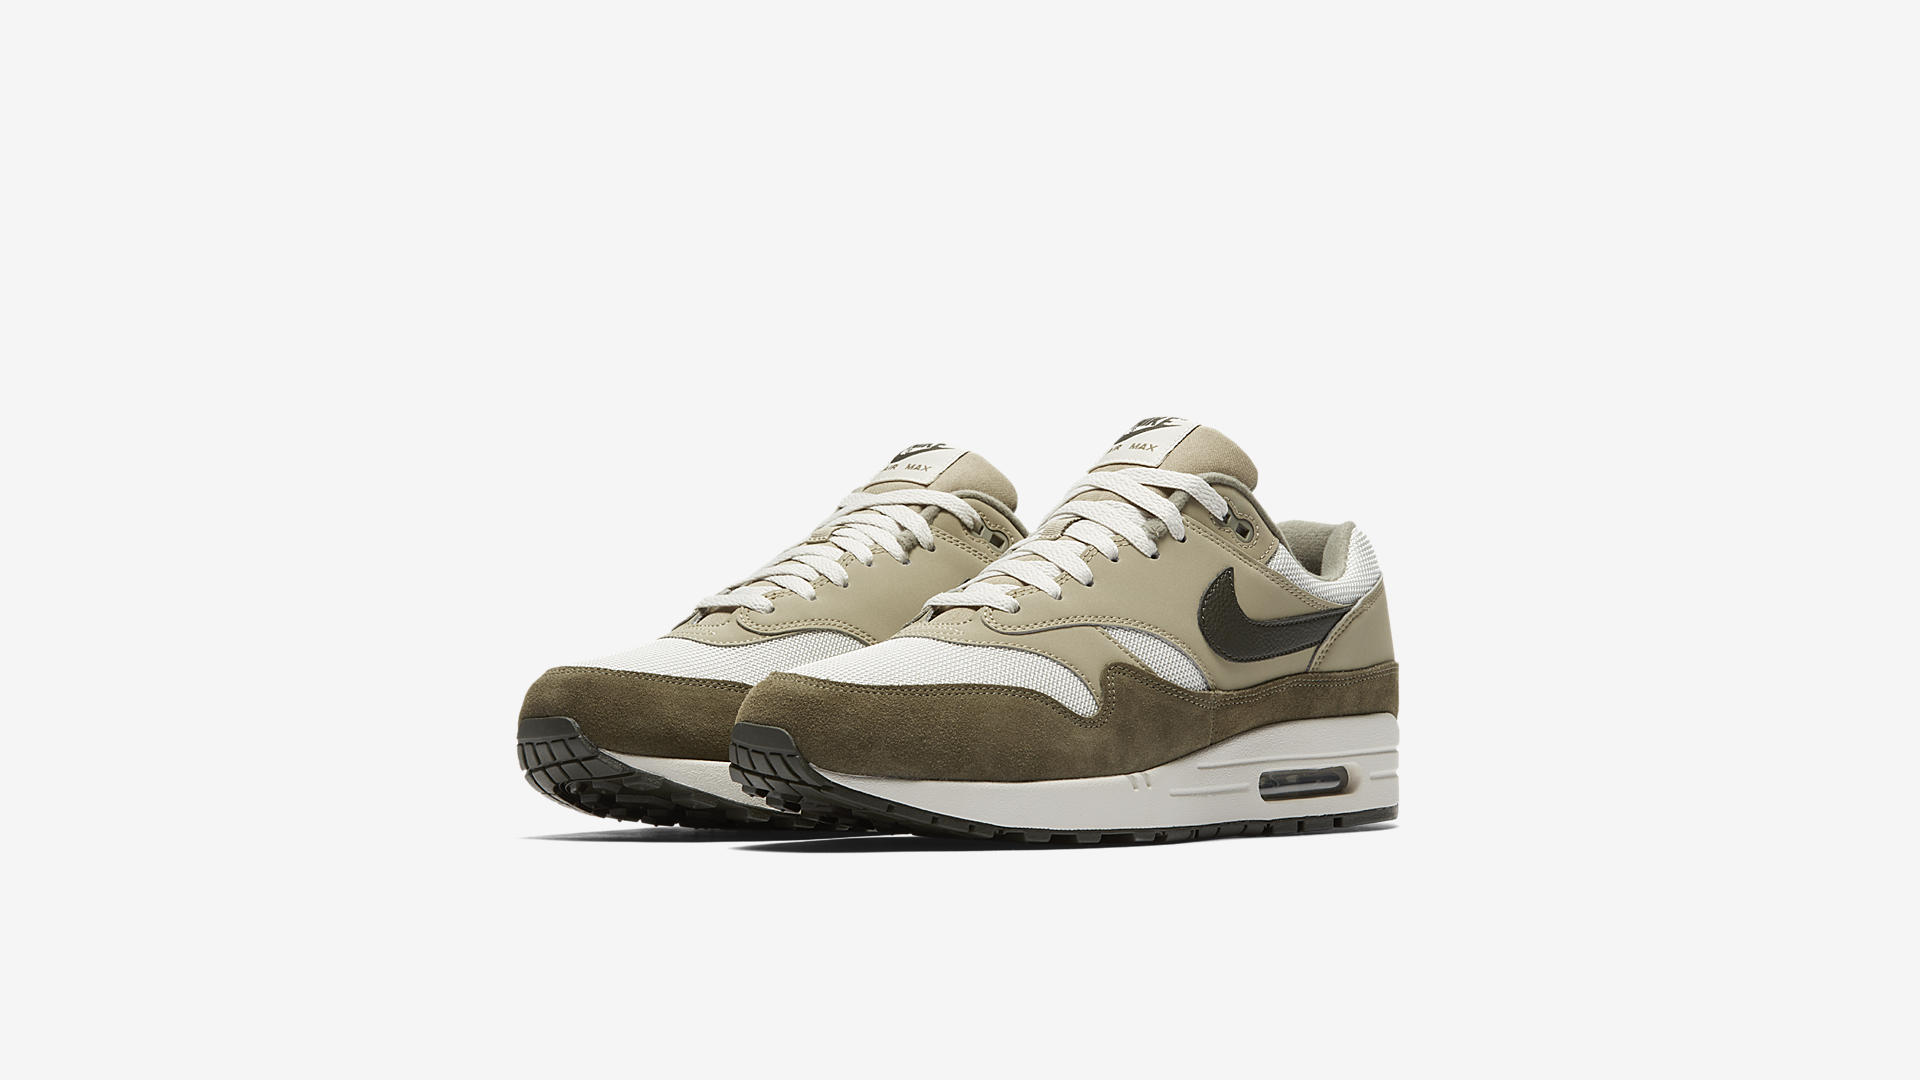 Nike Air Max 1 Medium Olive / Sequoia-Neutral Olive (AH8145-201)